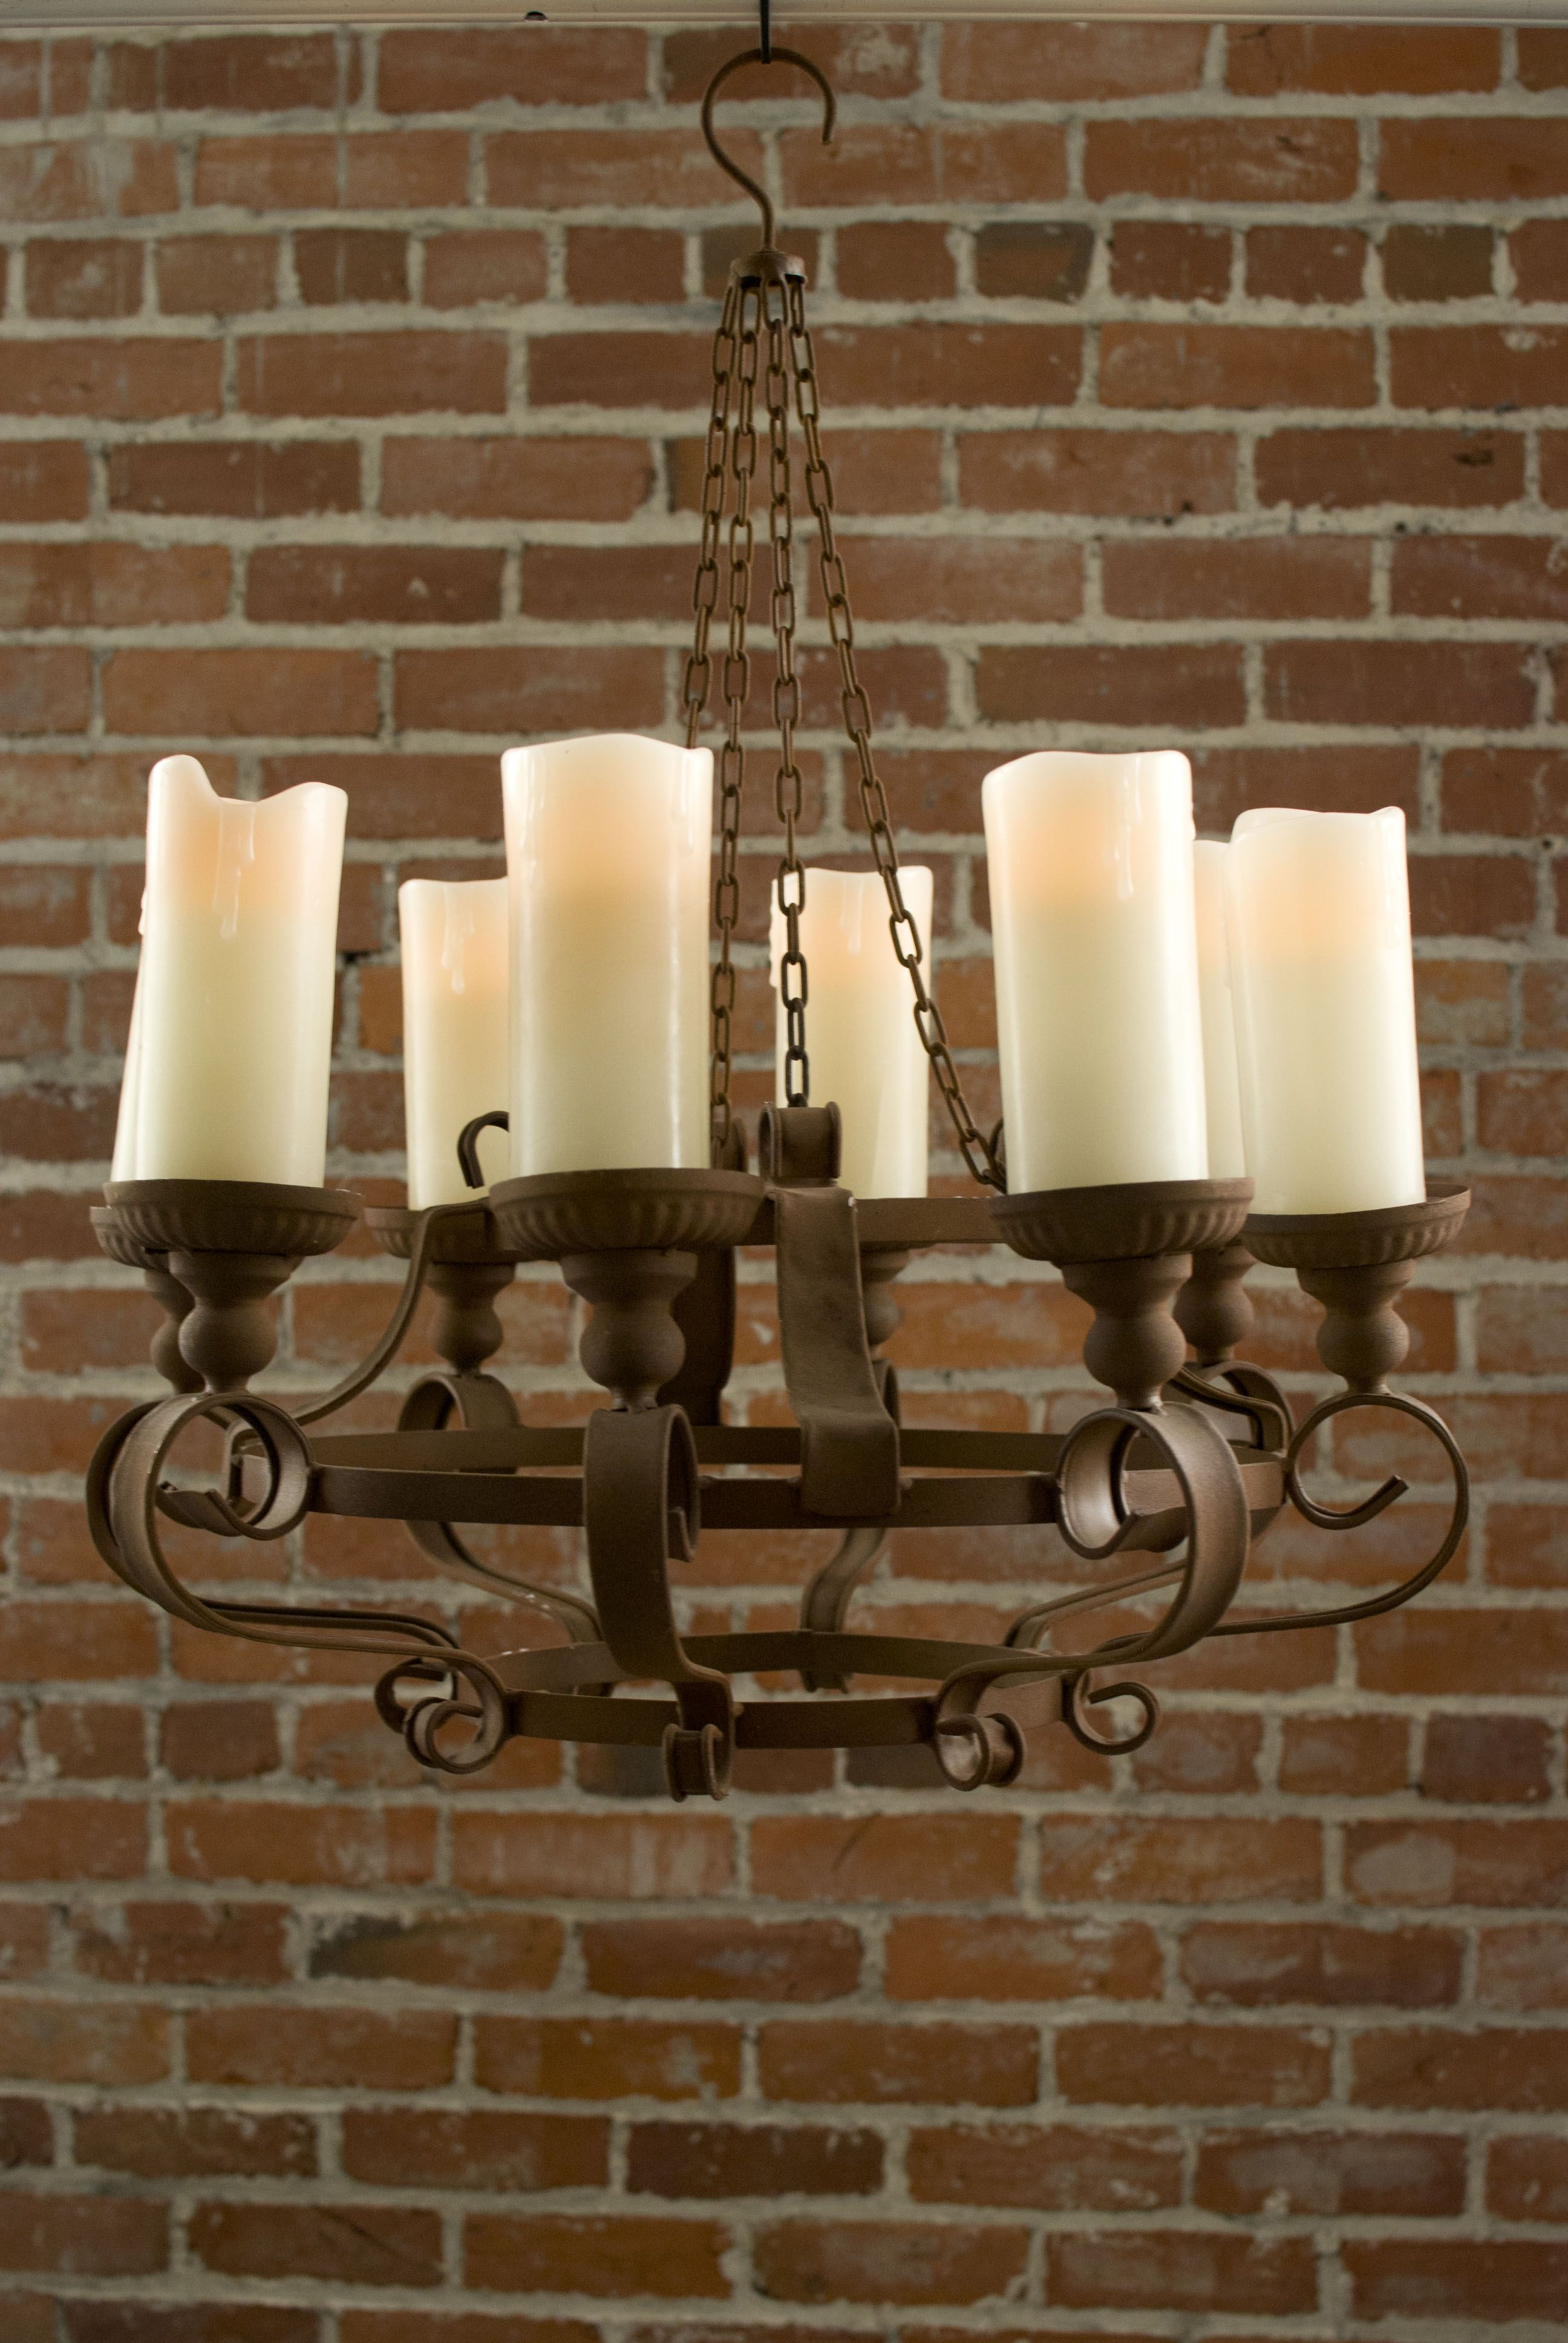 Rustic Chandeliers With Battery Powered Led Candles No Power